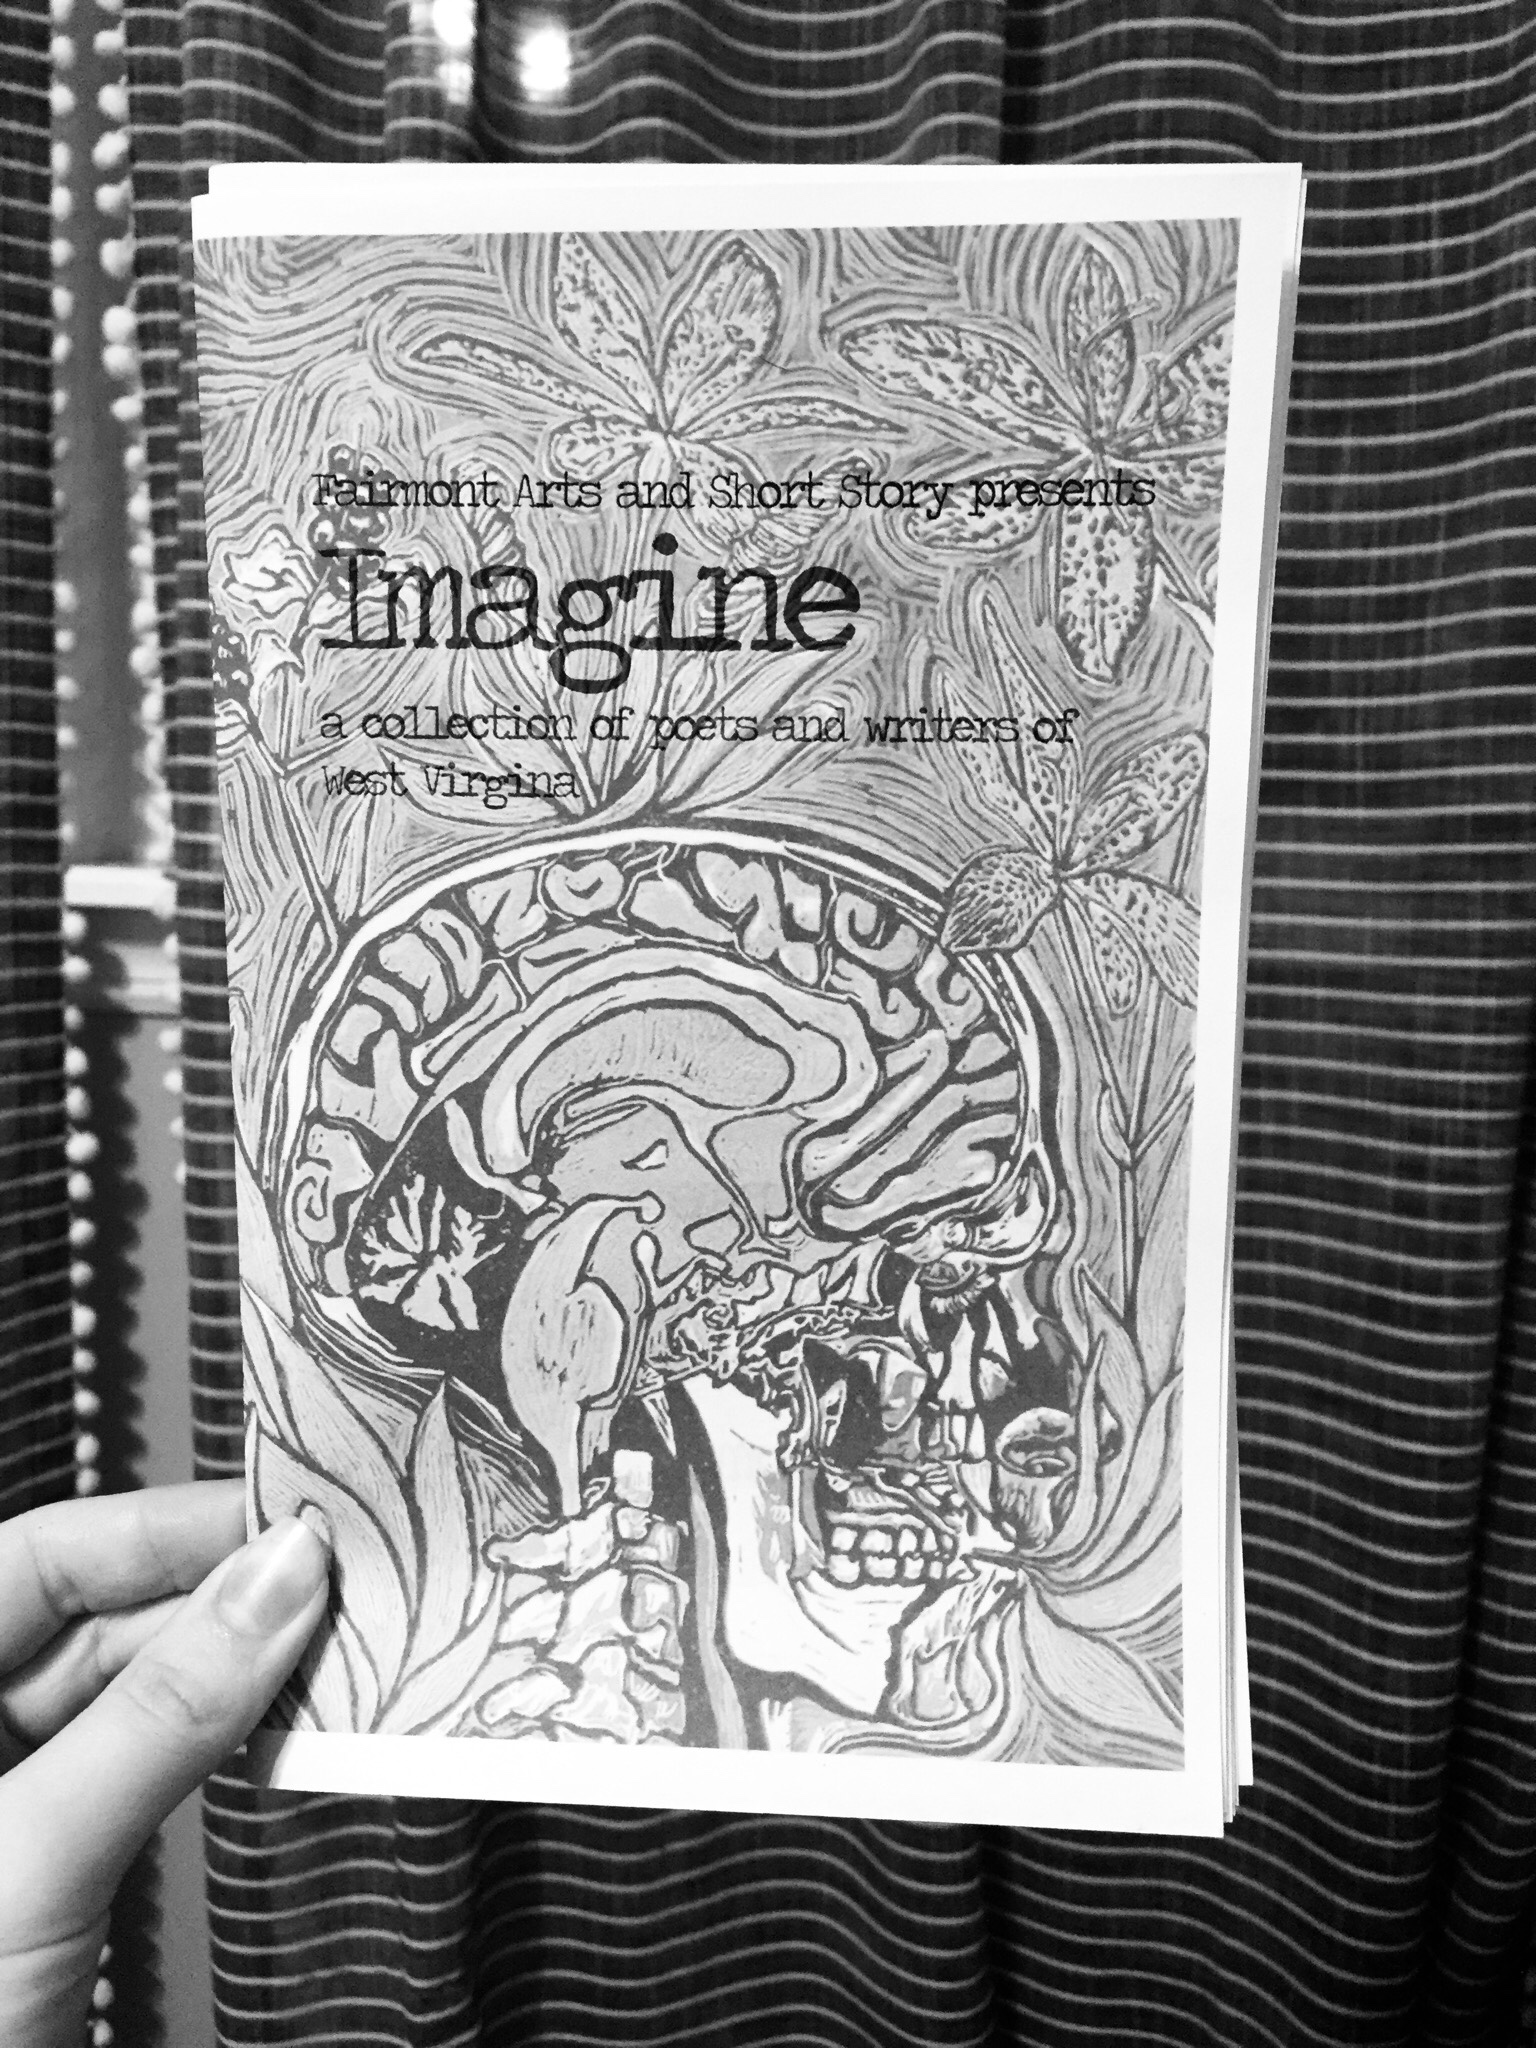 The zine, available at the brewery! (Make sure to put a dollar in the tip jar for it!)